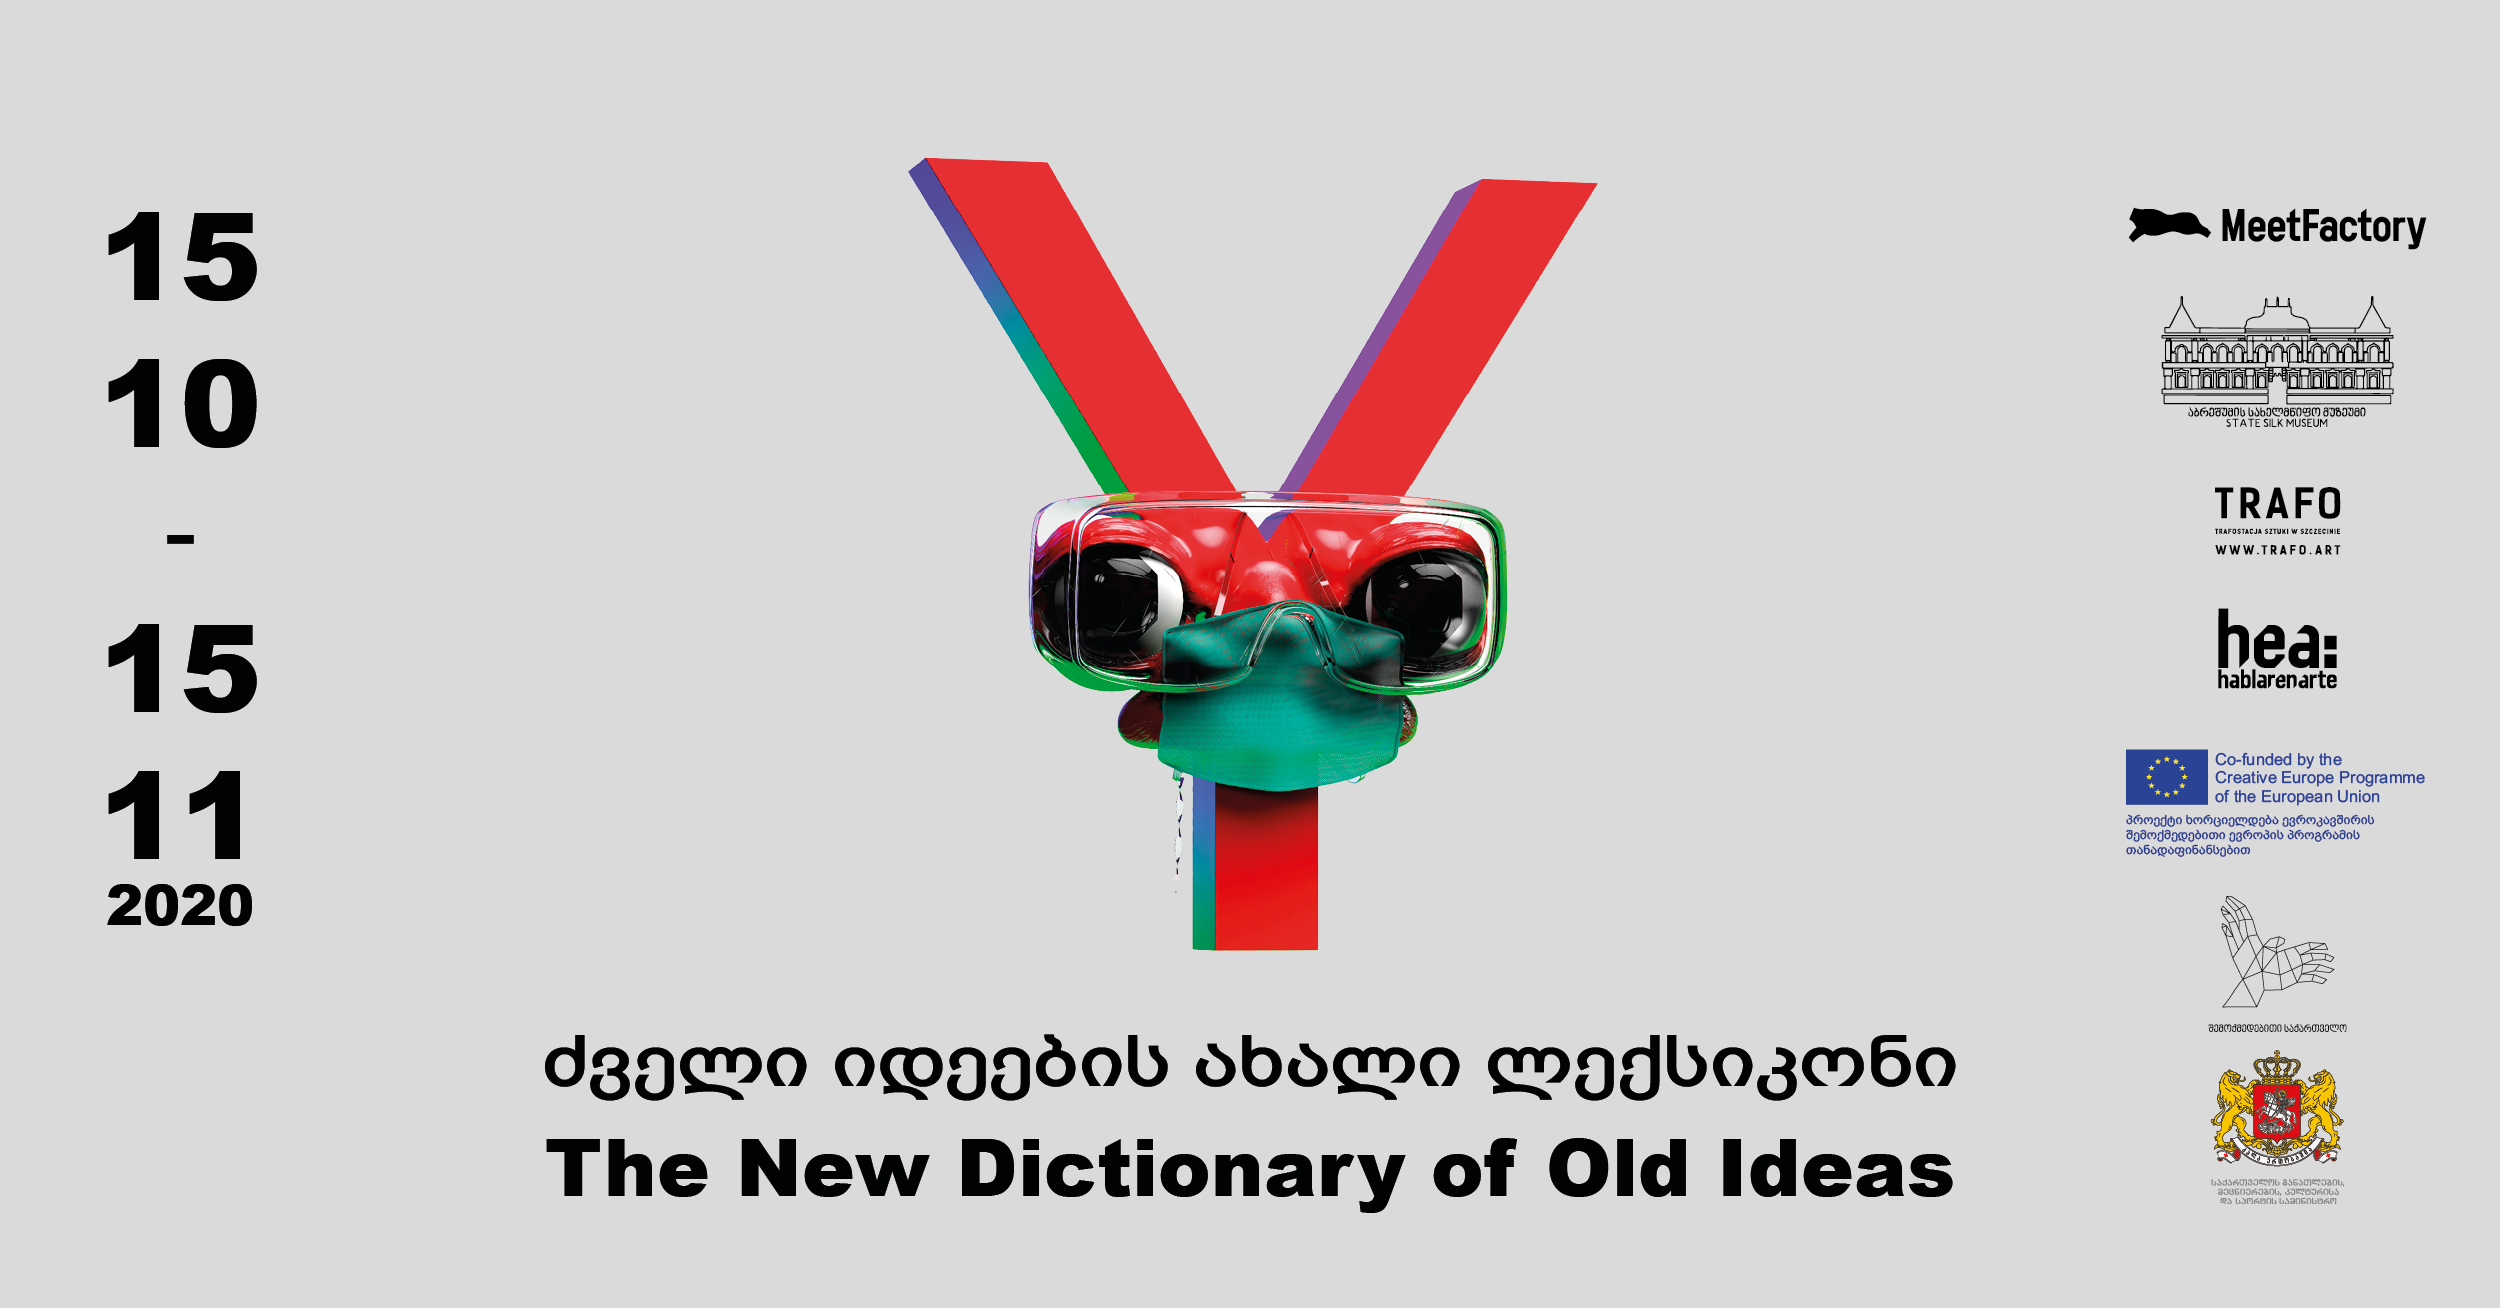 The New Dictionary of Old Ideas